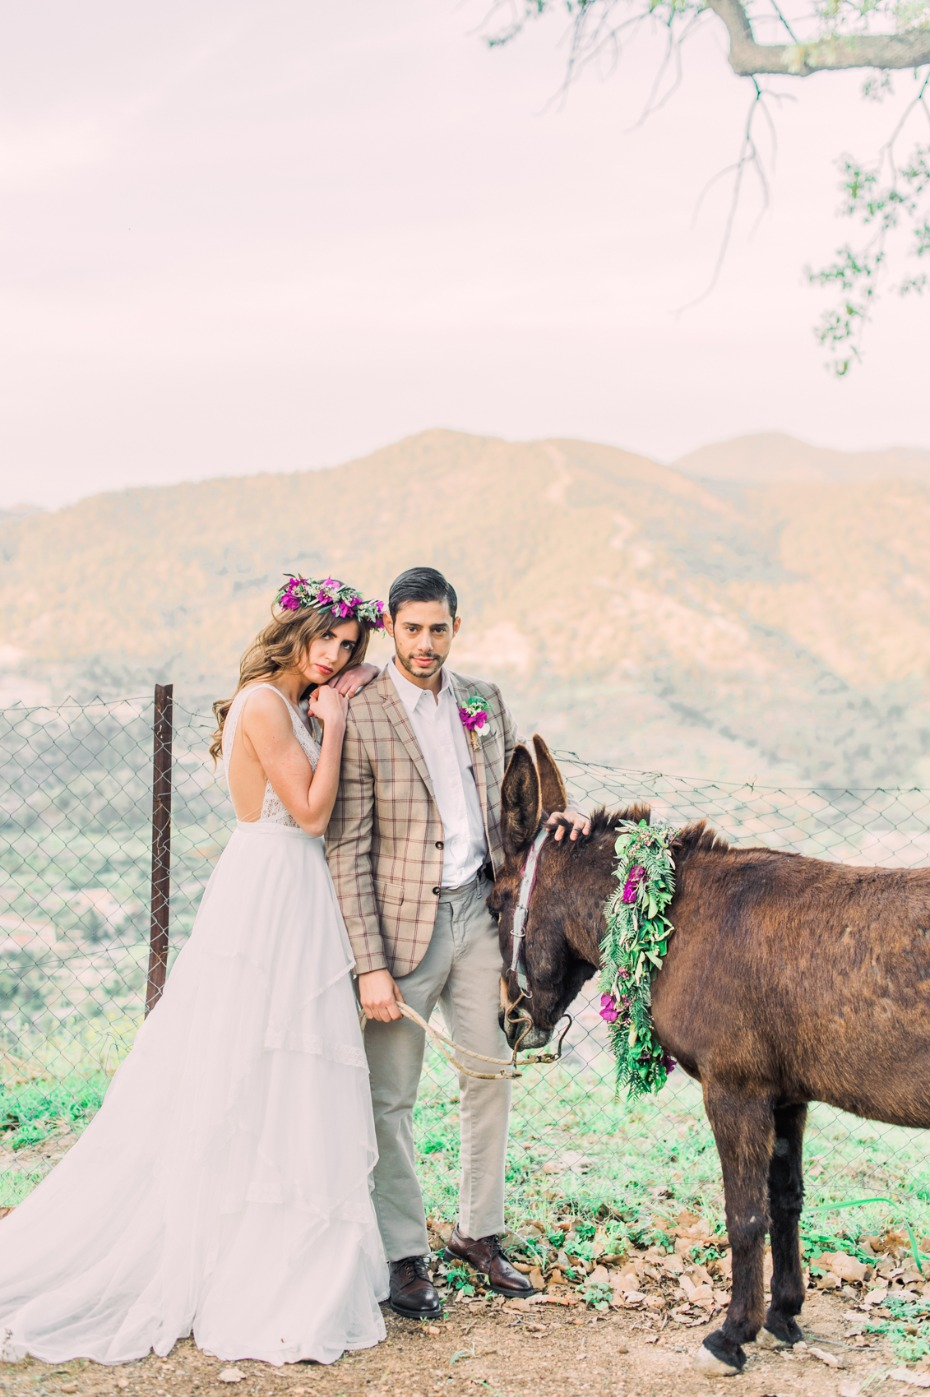 Traditional boho wedding inspiration